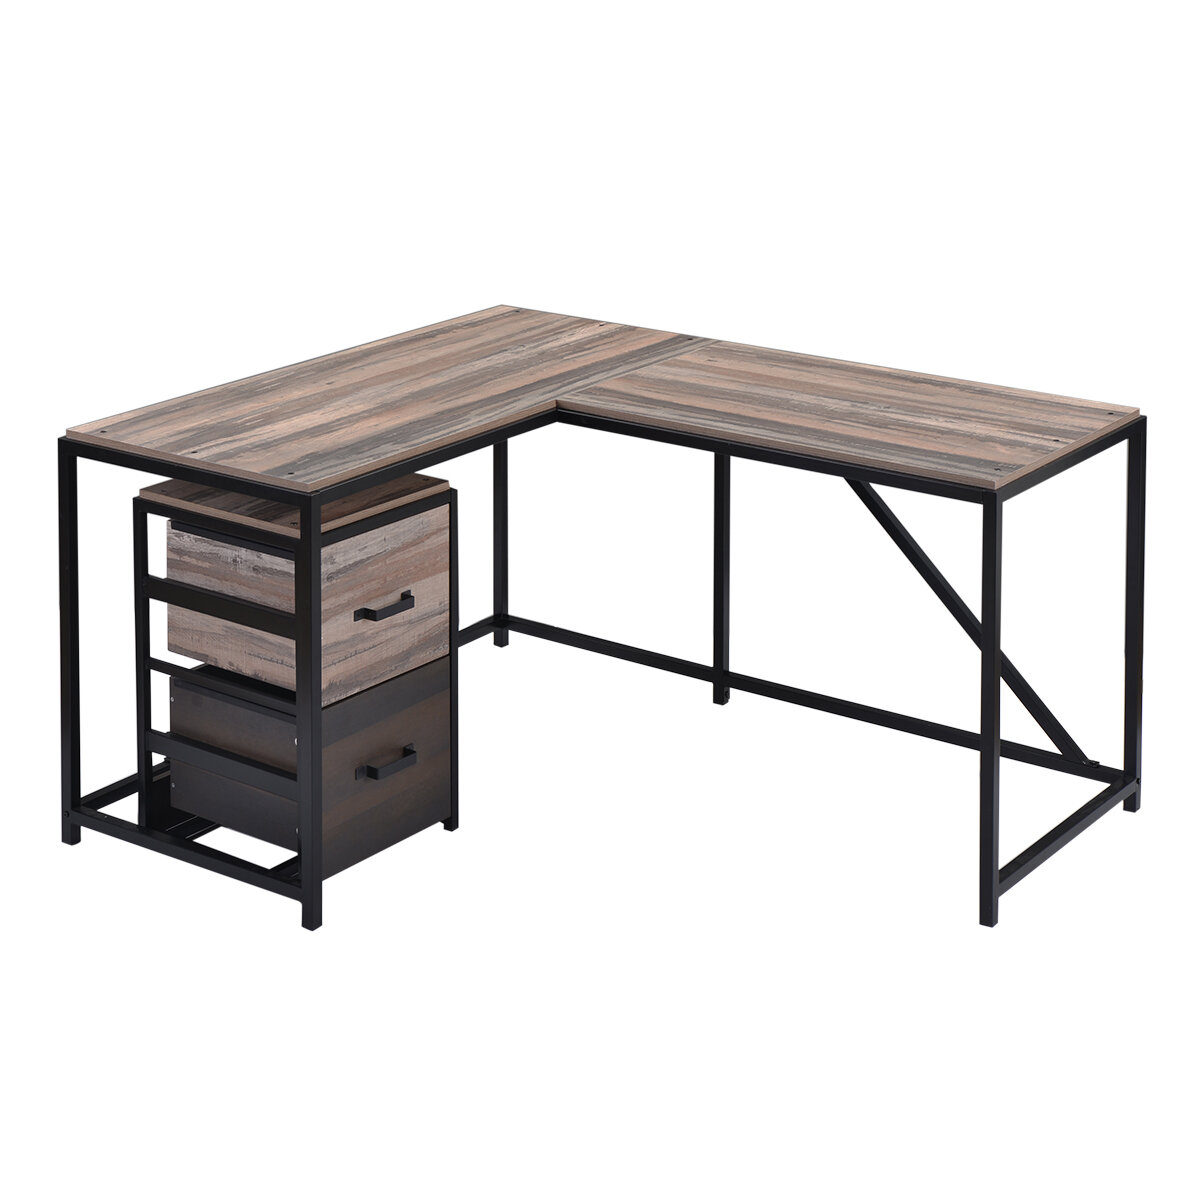 17 Stories L Shaped Home Office Computer Desk With Modern Style And Mdf Board Easy To Assemble Walnut